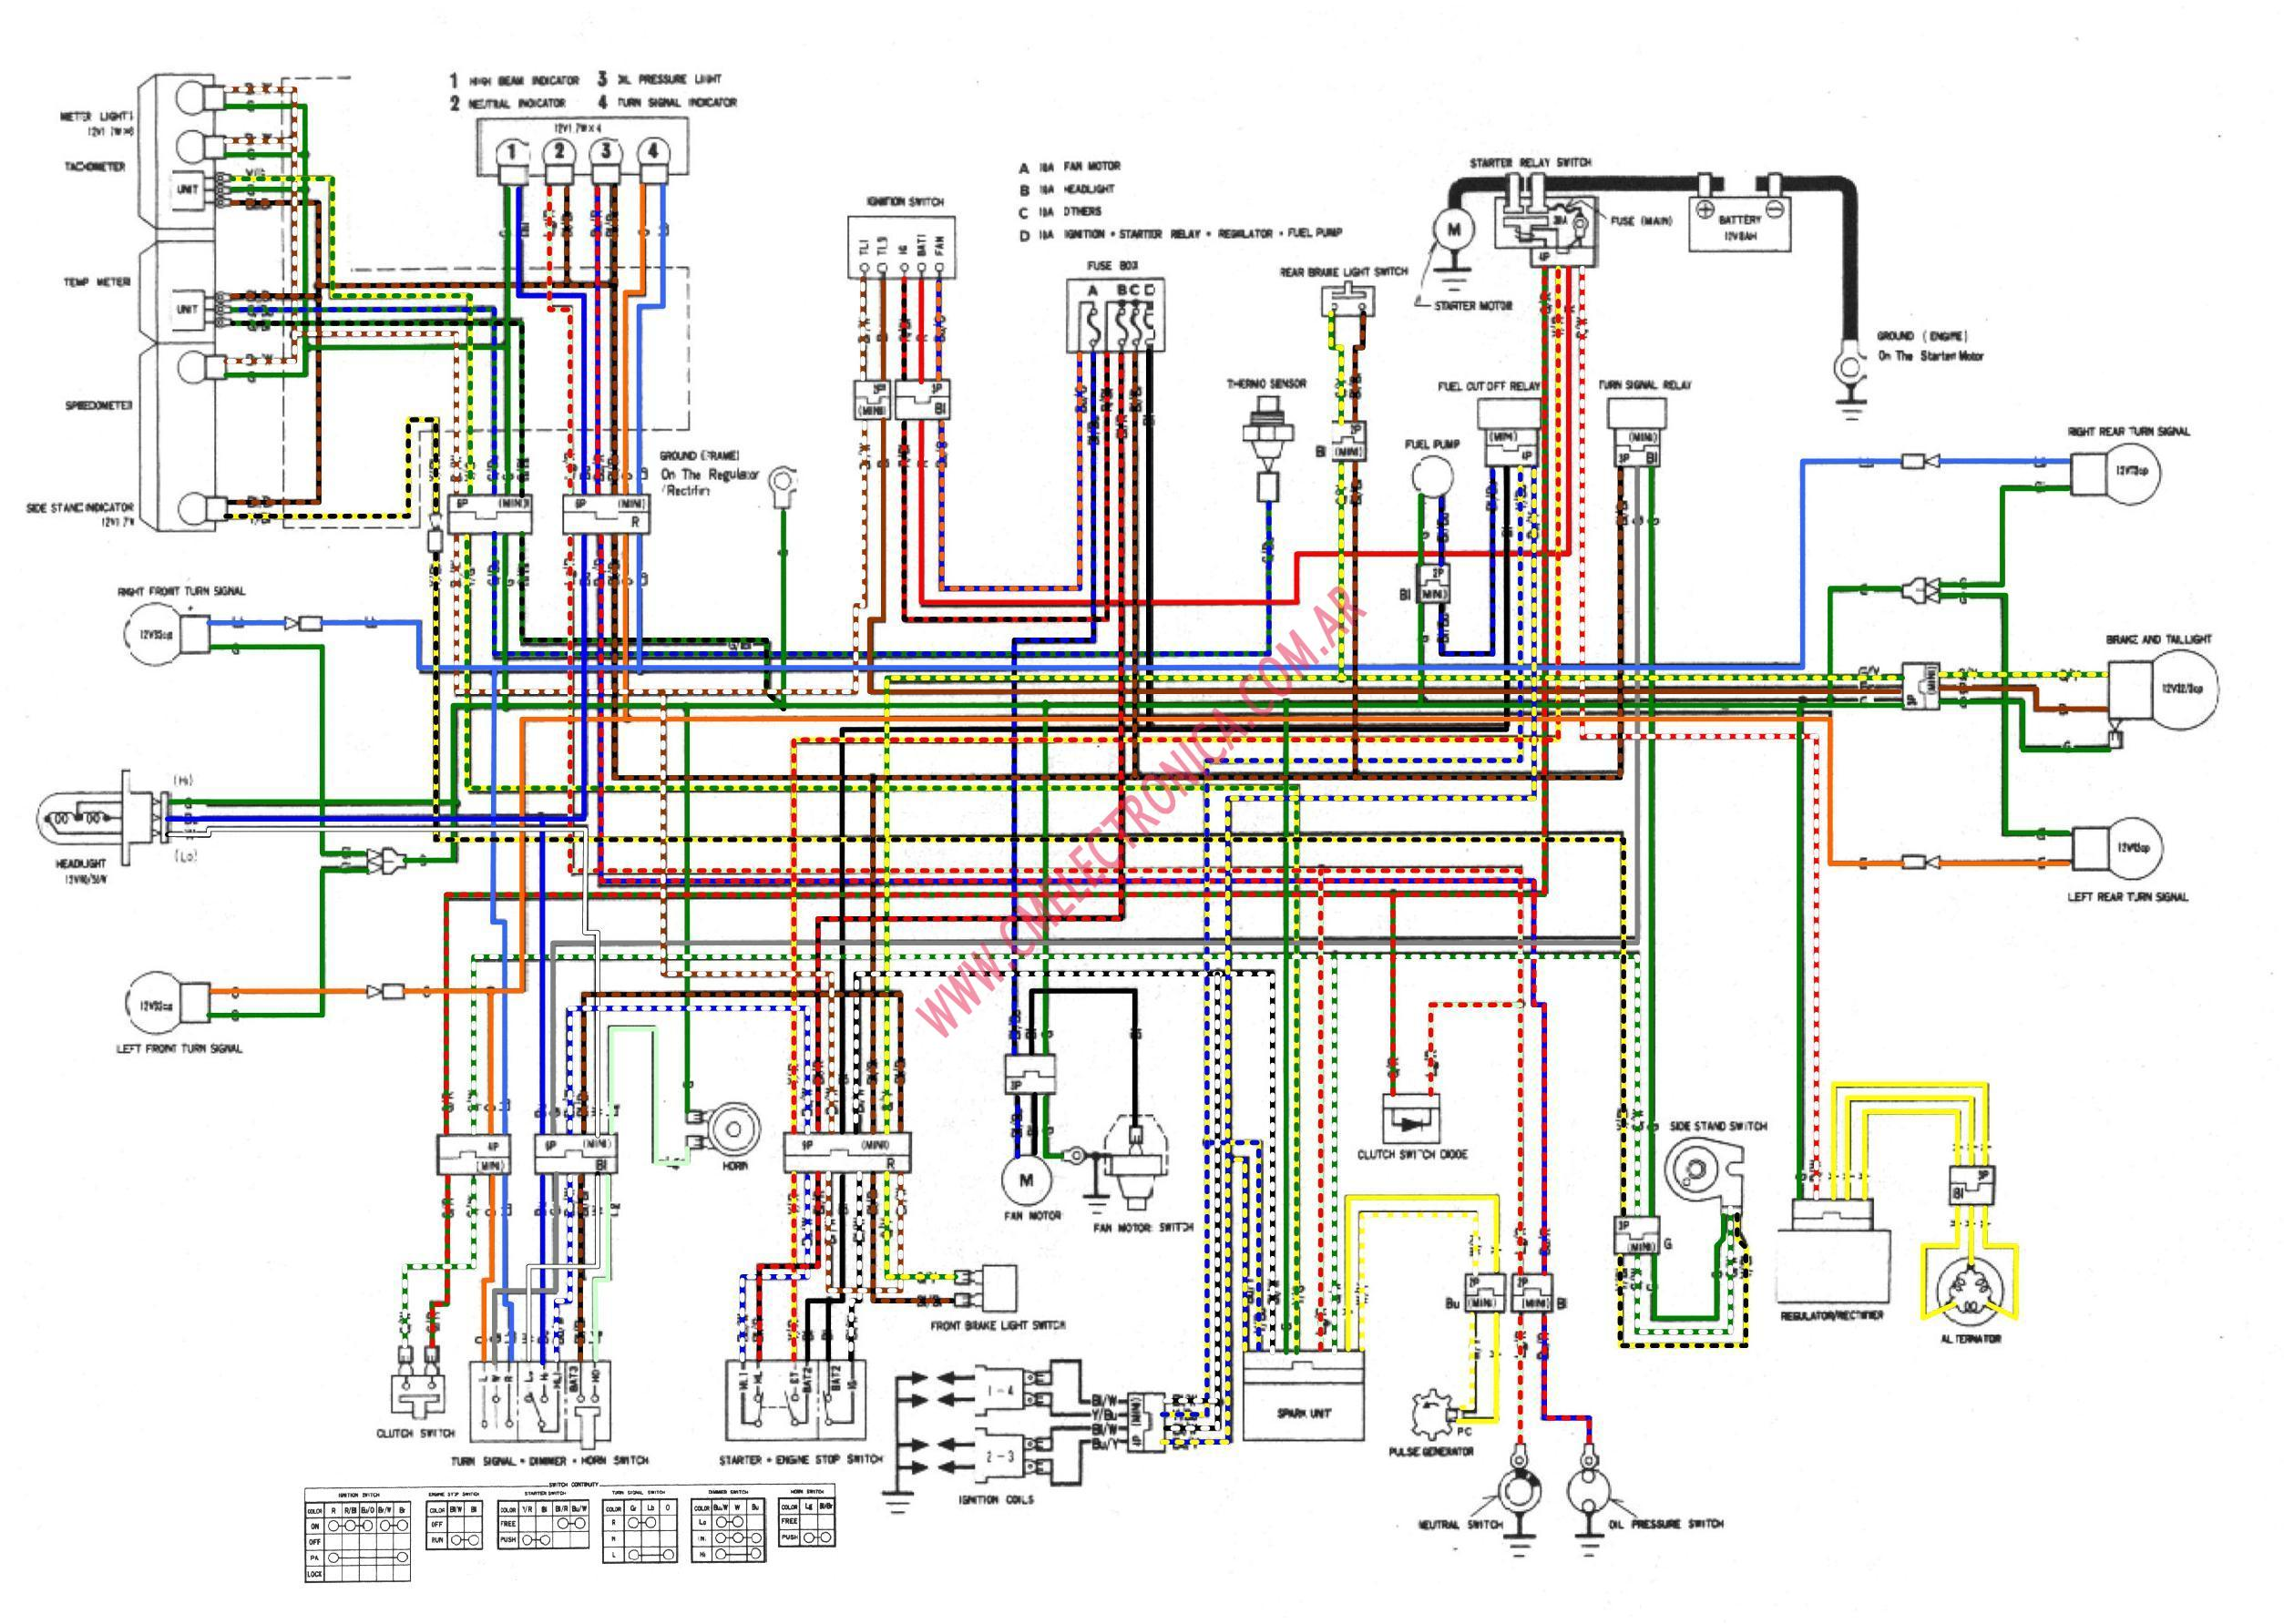 [DIAGRAM_38DE]  XF_0177] Diagram For Gy6 150Cc Scooter Get Free Image About Wiring Diagram  Free Diagram   Znen 150cc Gy6 Ignition Wiring Diagram      Rosz Lopla Tixat Eumqu Hicag Momece Tivexi Tixat Mohammedshrine Librar  Wiring 101